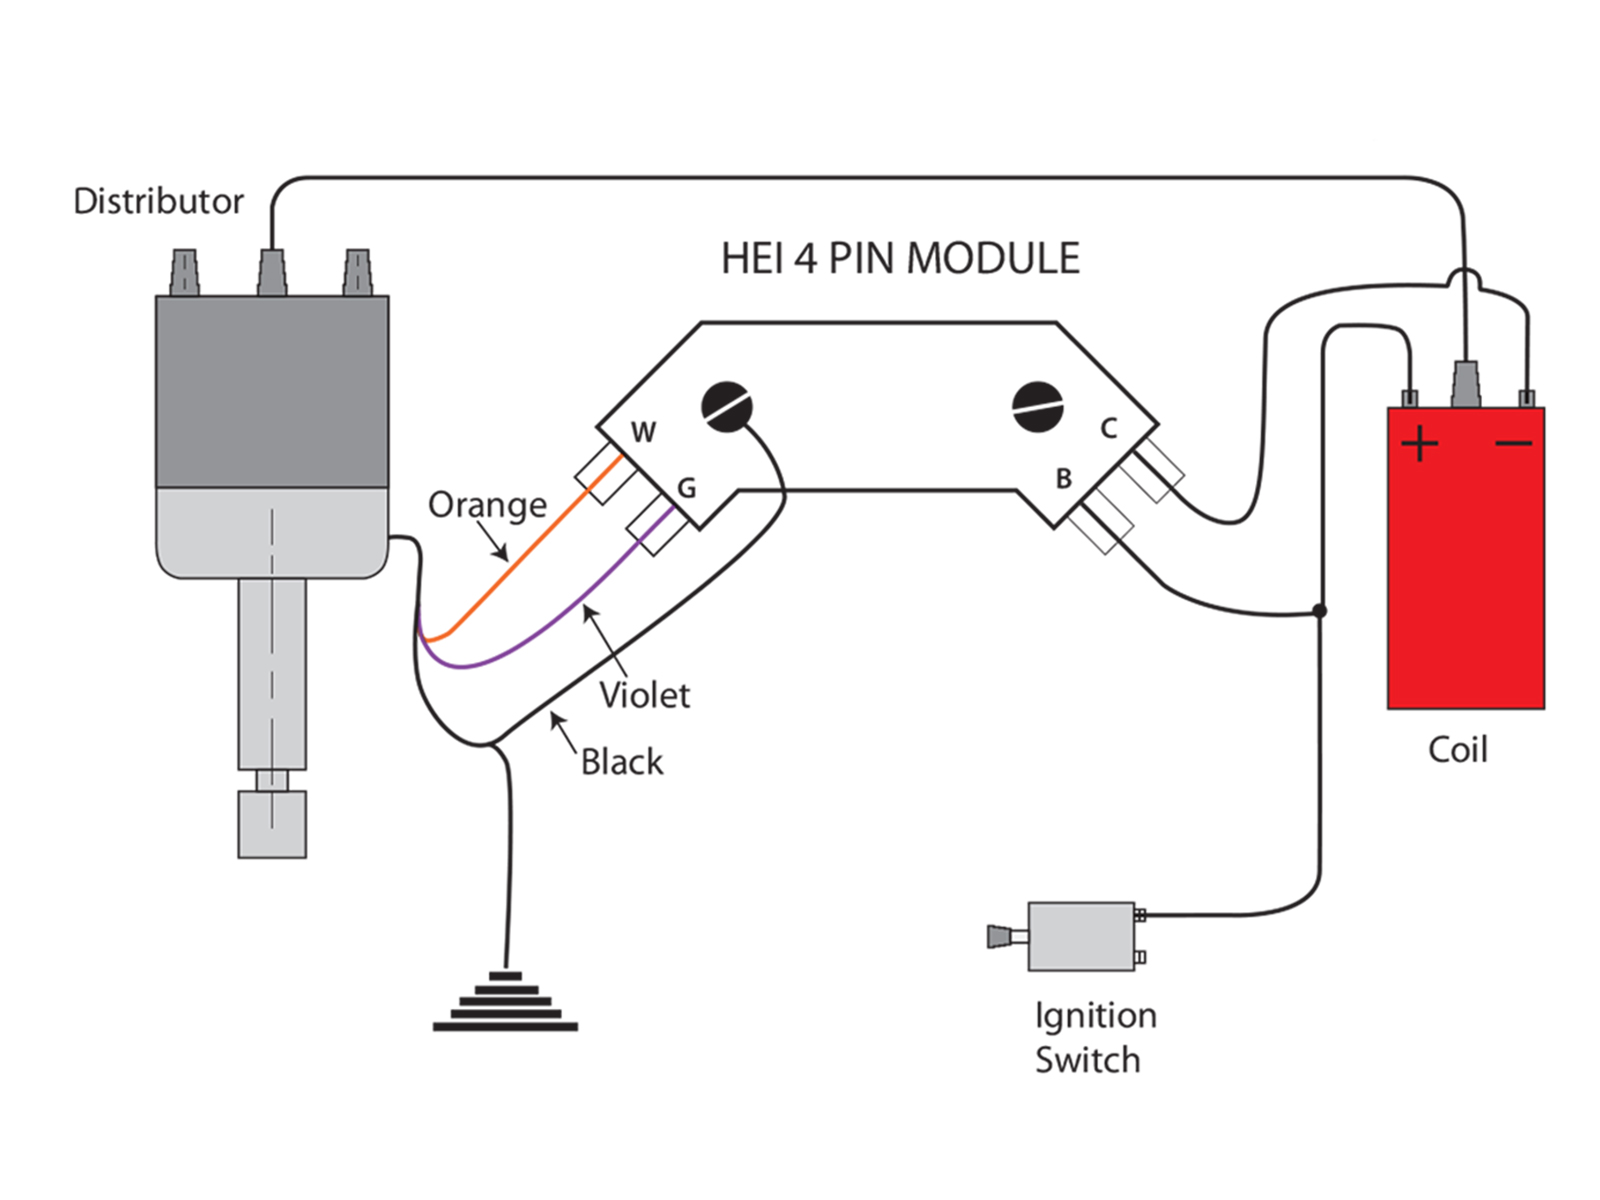 This is a simplified drawing of the wiring diagram necessary to make the conversion. Make sure the plate where the HEI module is mounted is securely grounded to the engine. If the engine runs poorly, try reversing the W and G connections.